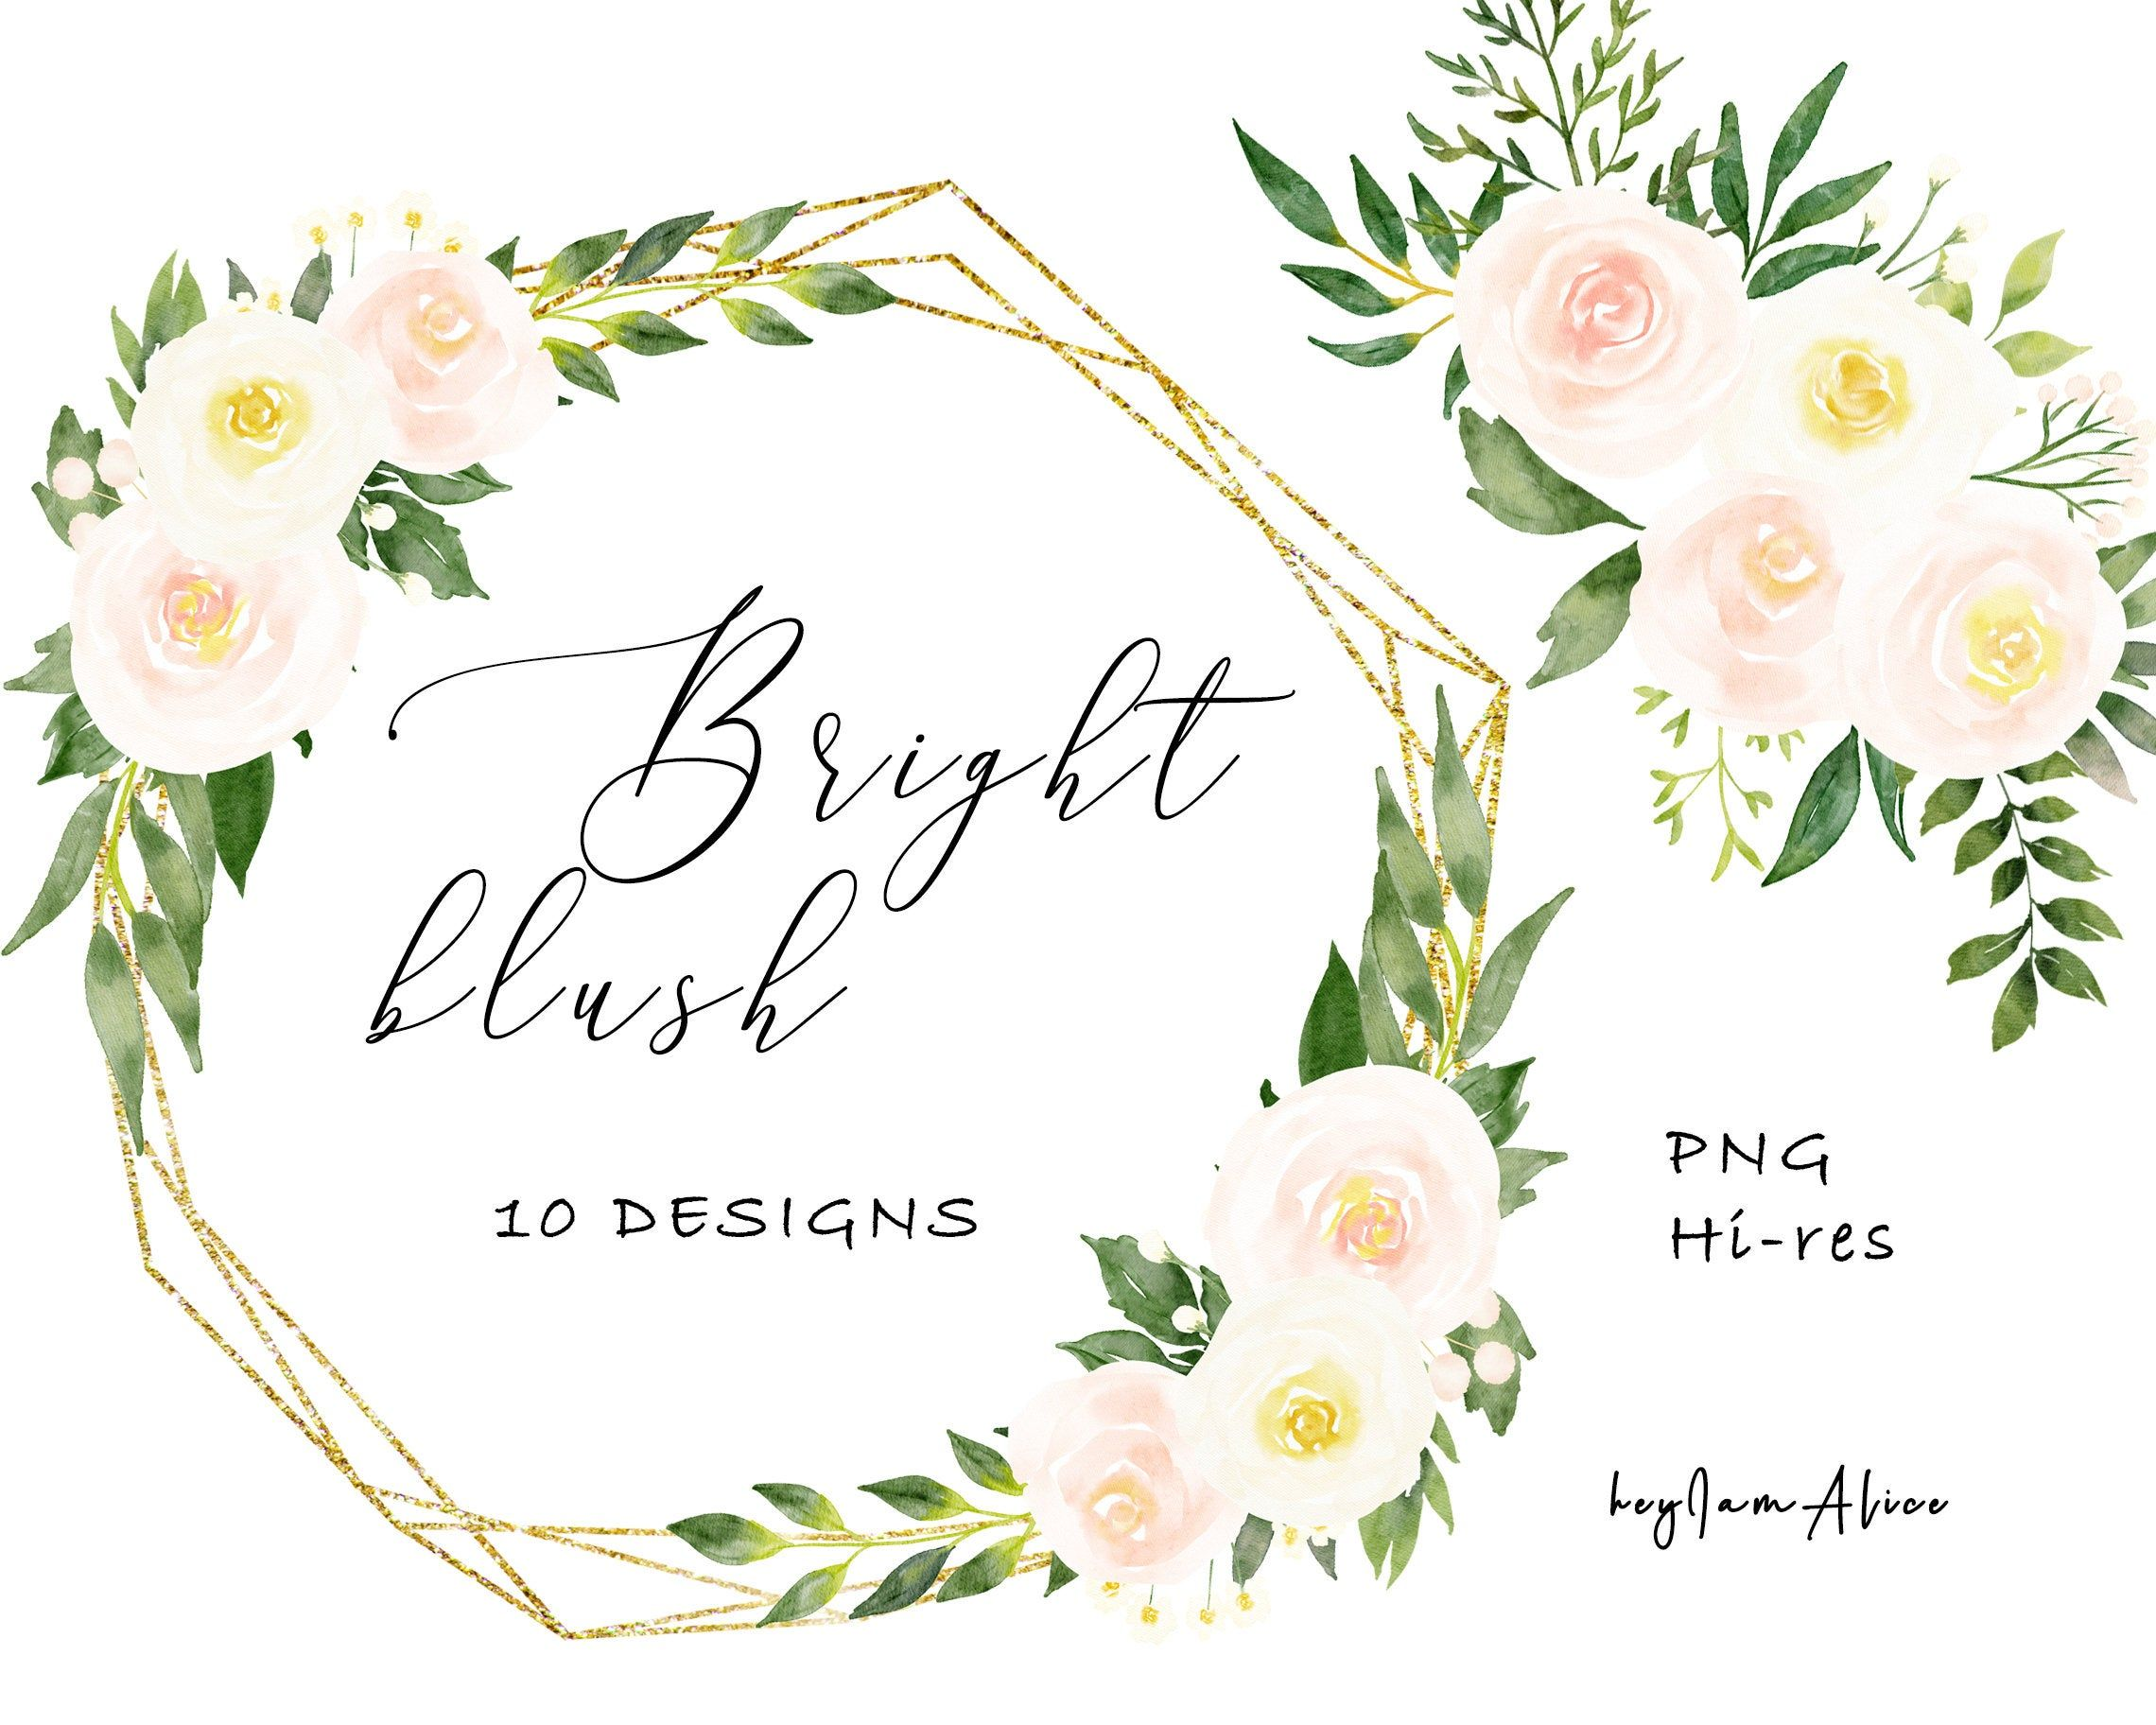 Wedding Design Wedding Greenery Bouquets Clipart Greenery Navy Blush Bouquets Wedding Bouquets Wedding Clipart Watercolor Flowers